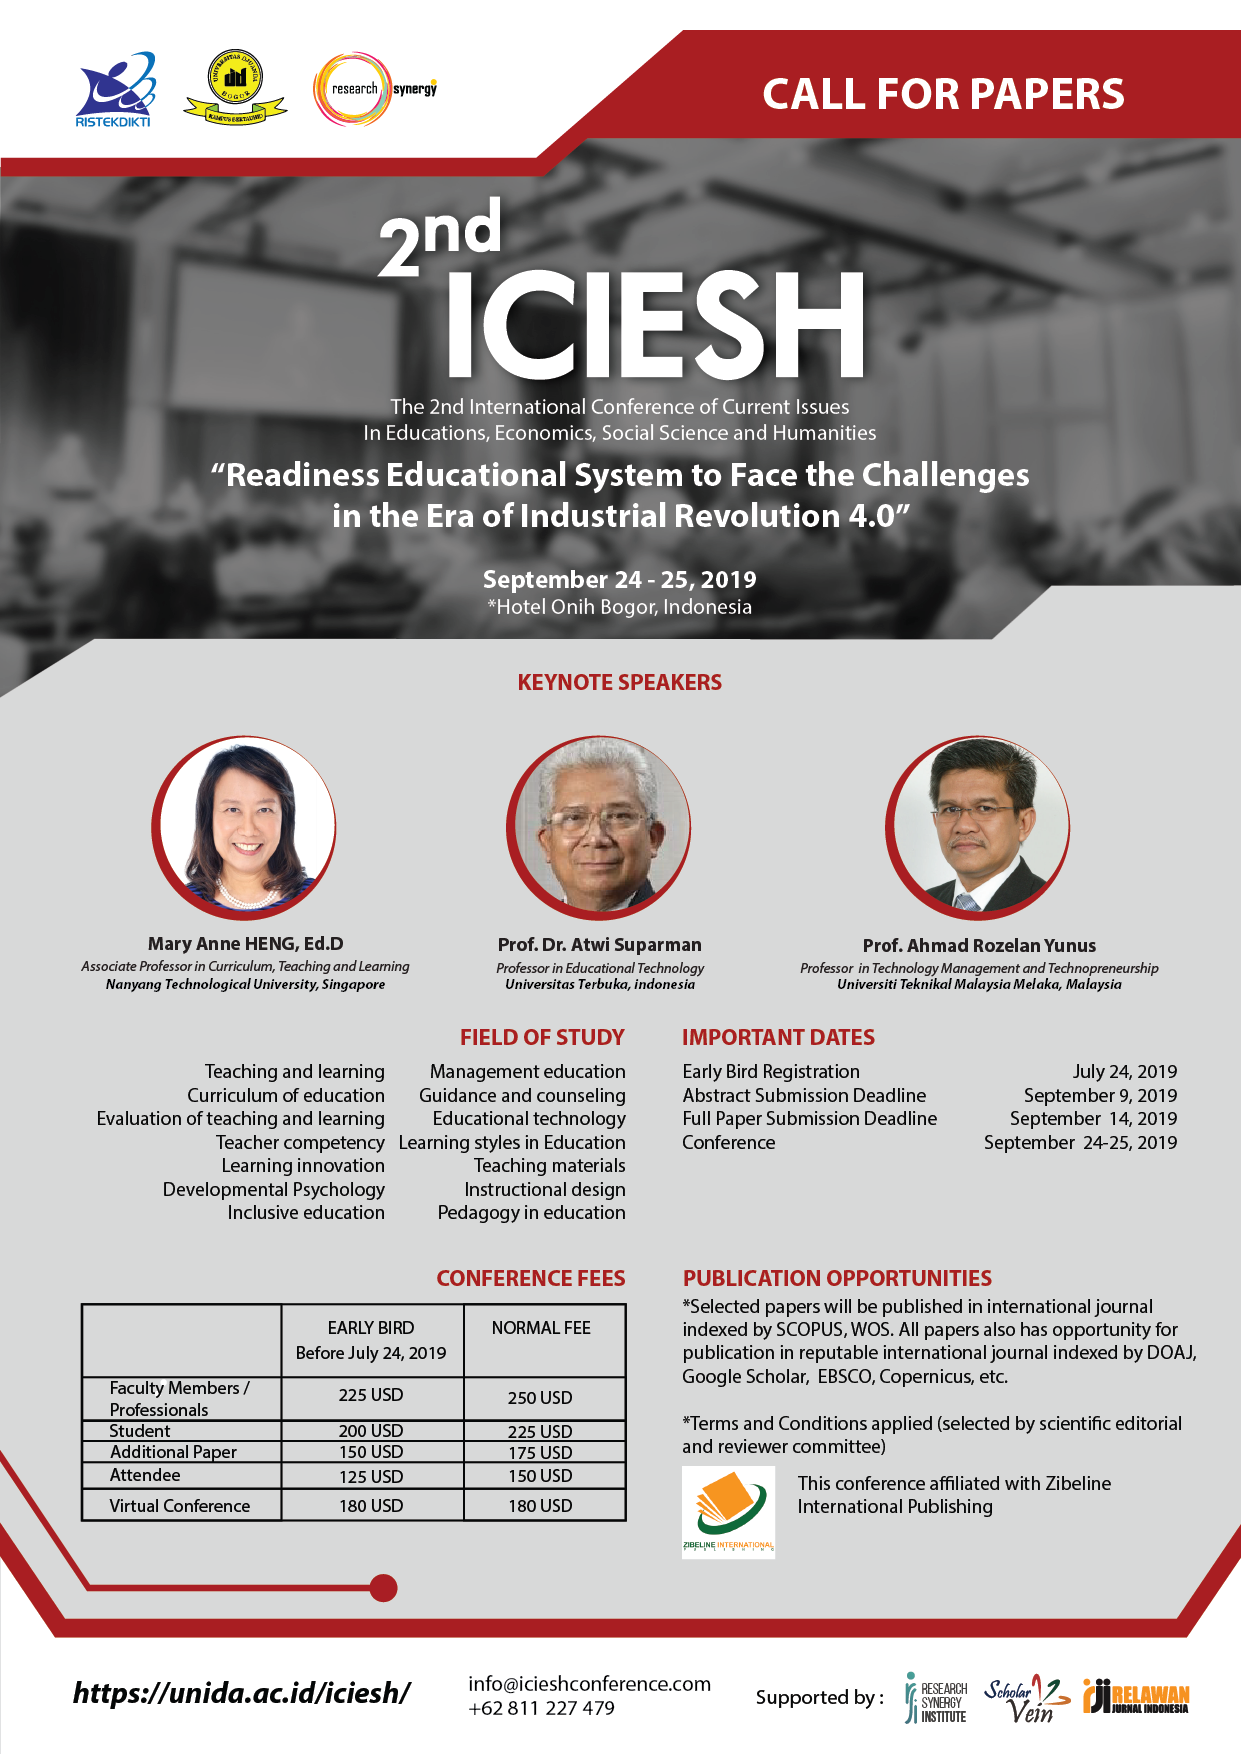 2nd International Conference of Current Issues in Educations, Economics, Social Science and Humanities (2nd ICIESH)